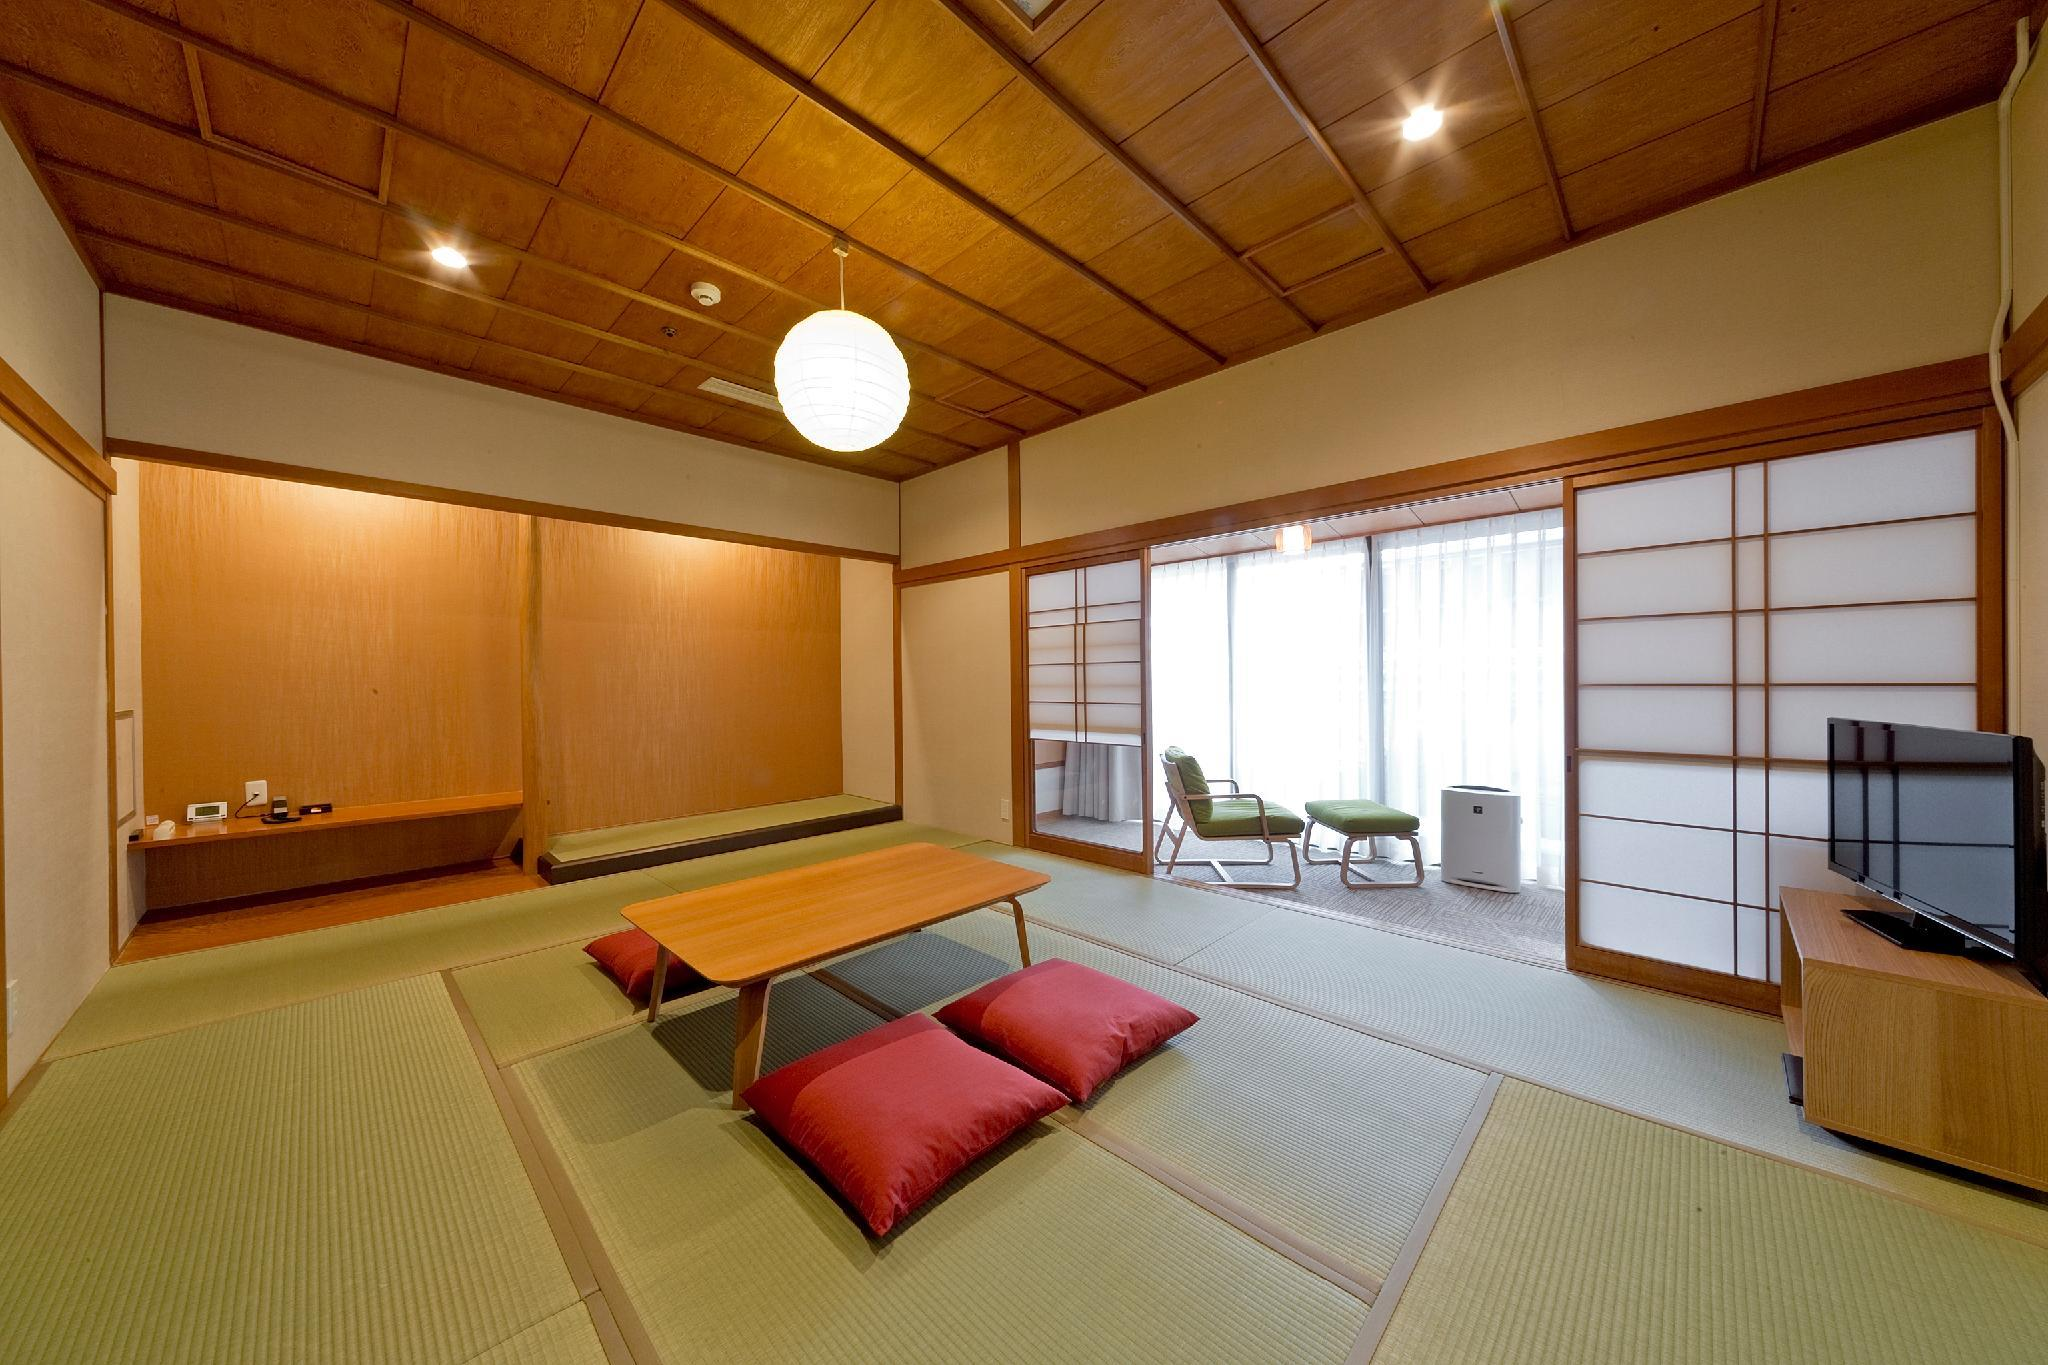 園景日式客房 - 可住5人 (Garden View Japanese Style Room for 5 People)